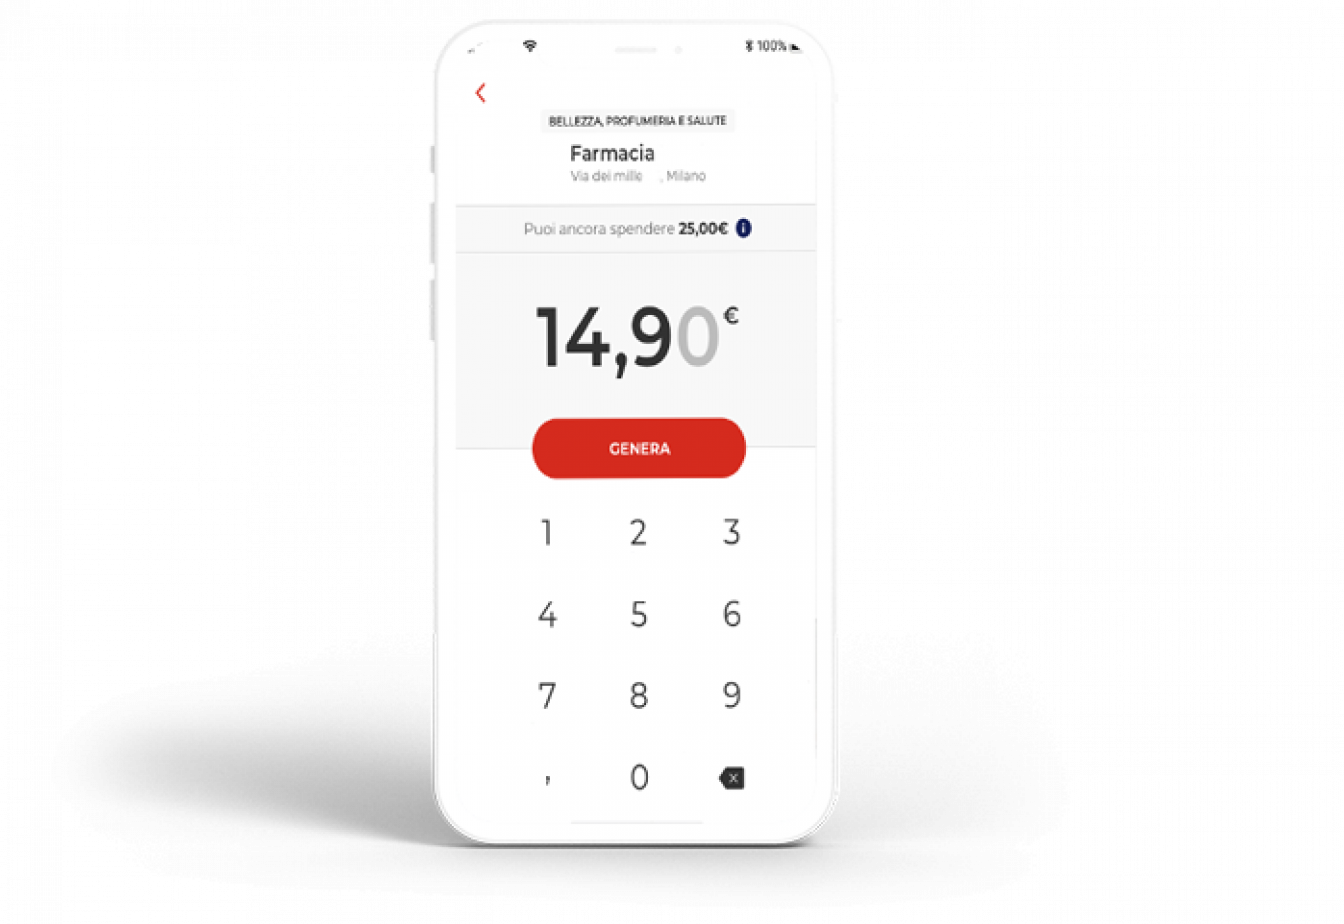 App-Buoni-AcquistoTicket-Compliments-MyEdenred-Shopping-genera